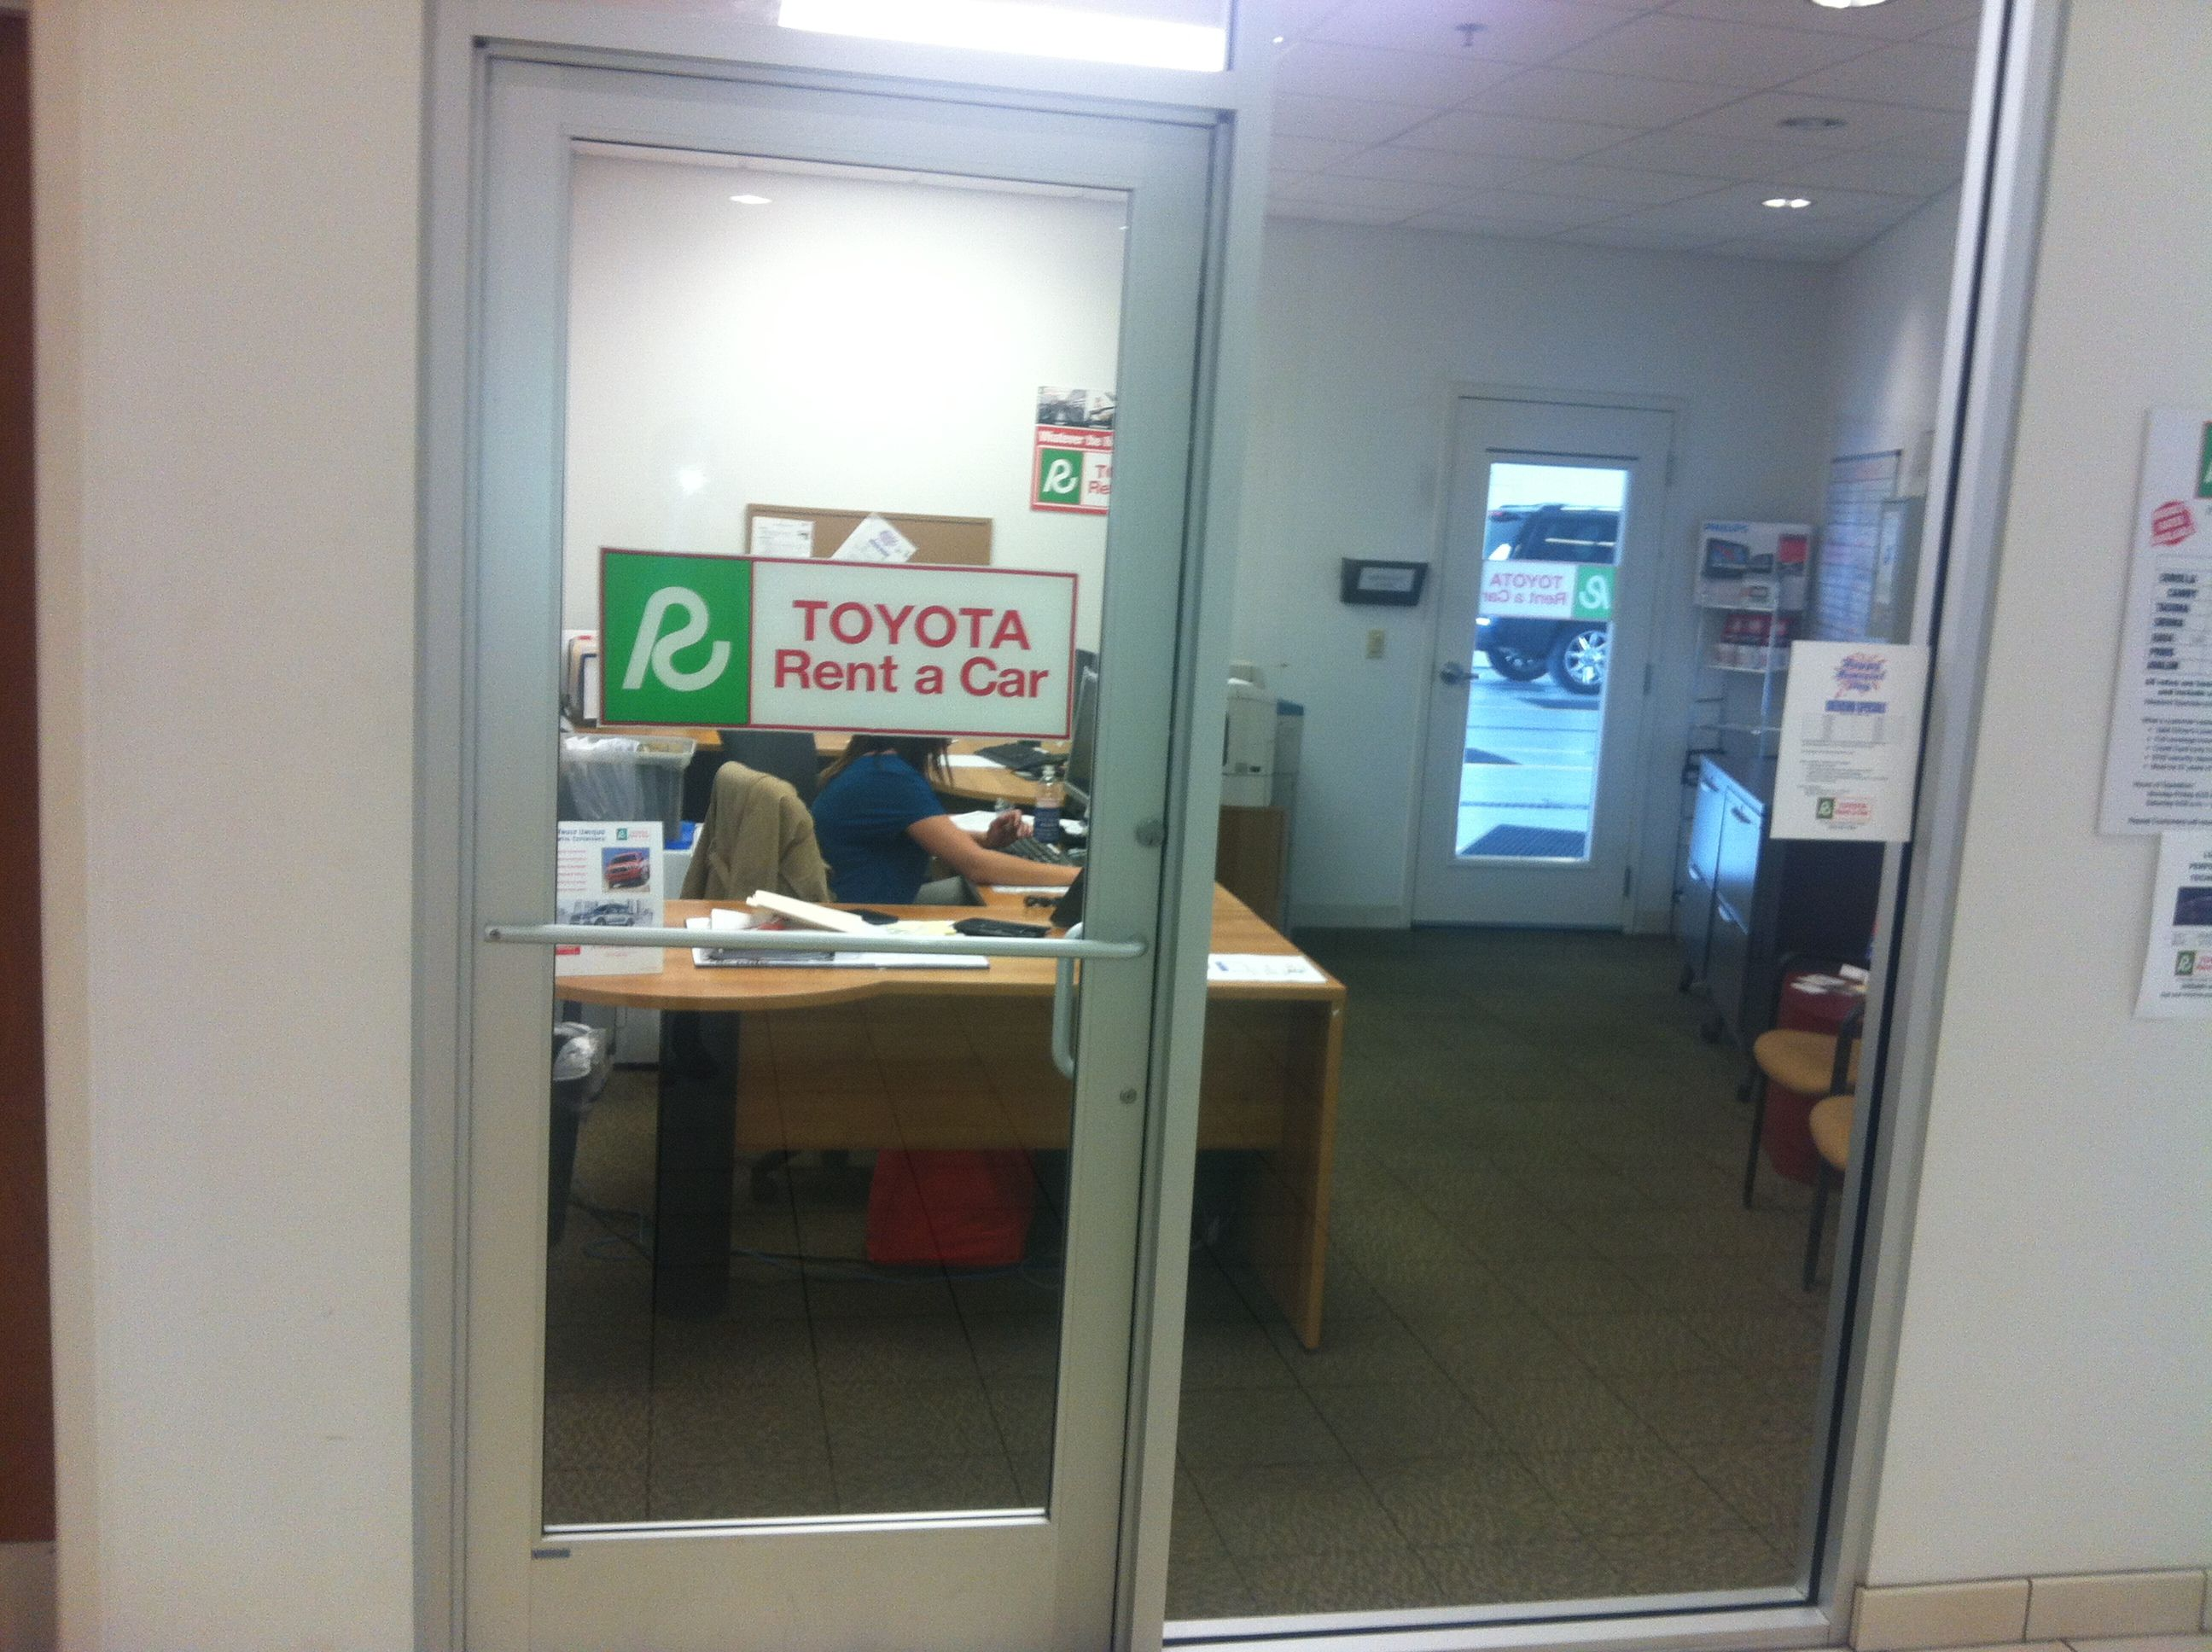 Toyota rent a car at toyota on nicholasville http www toyotaonnicholasville com rental our favorite things pinterest toyota